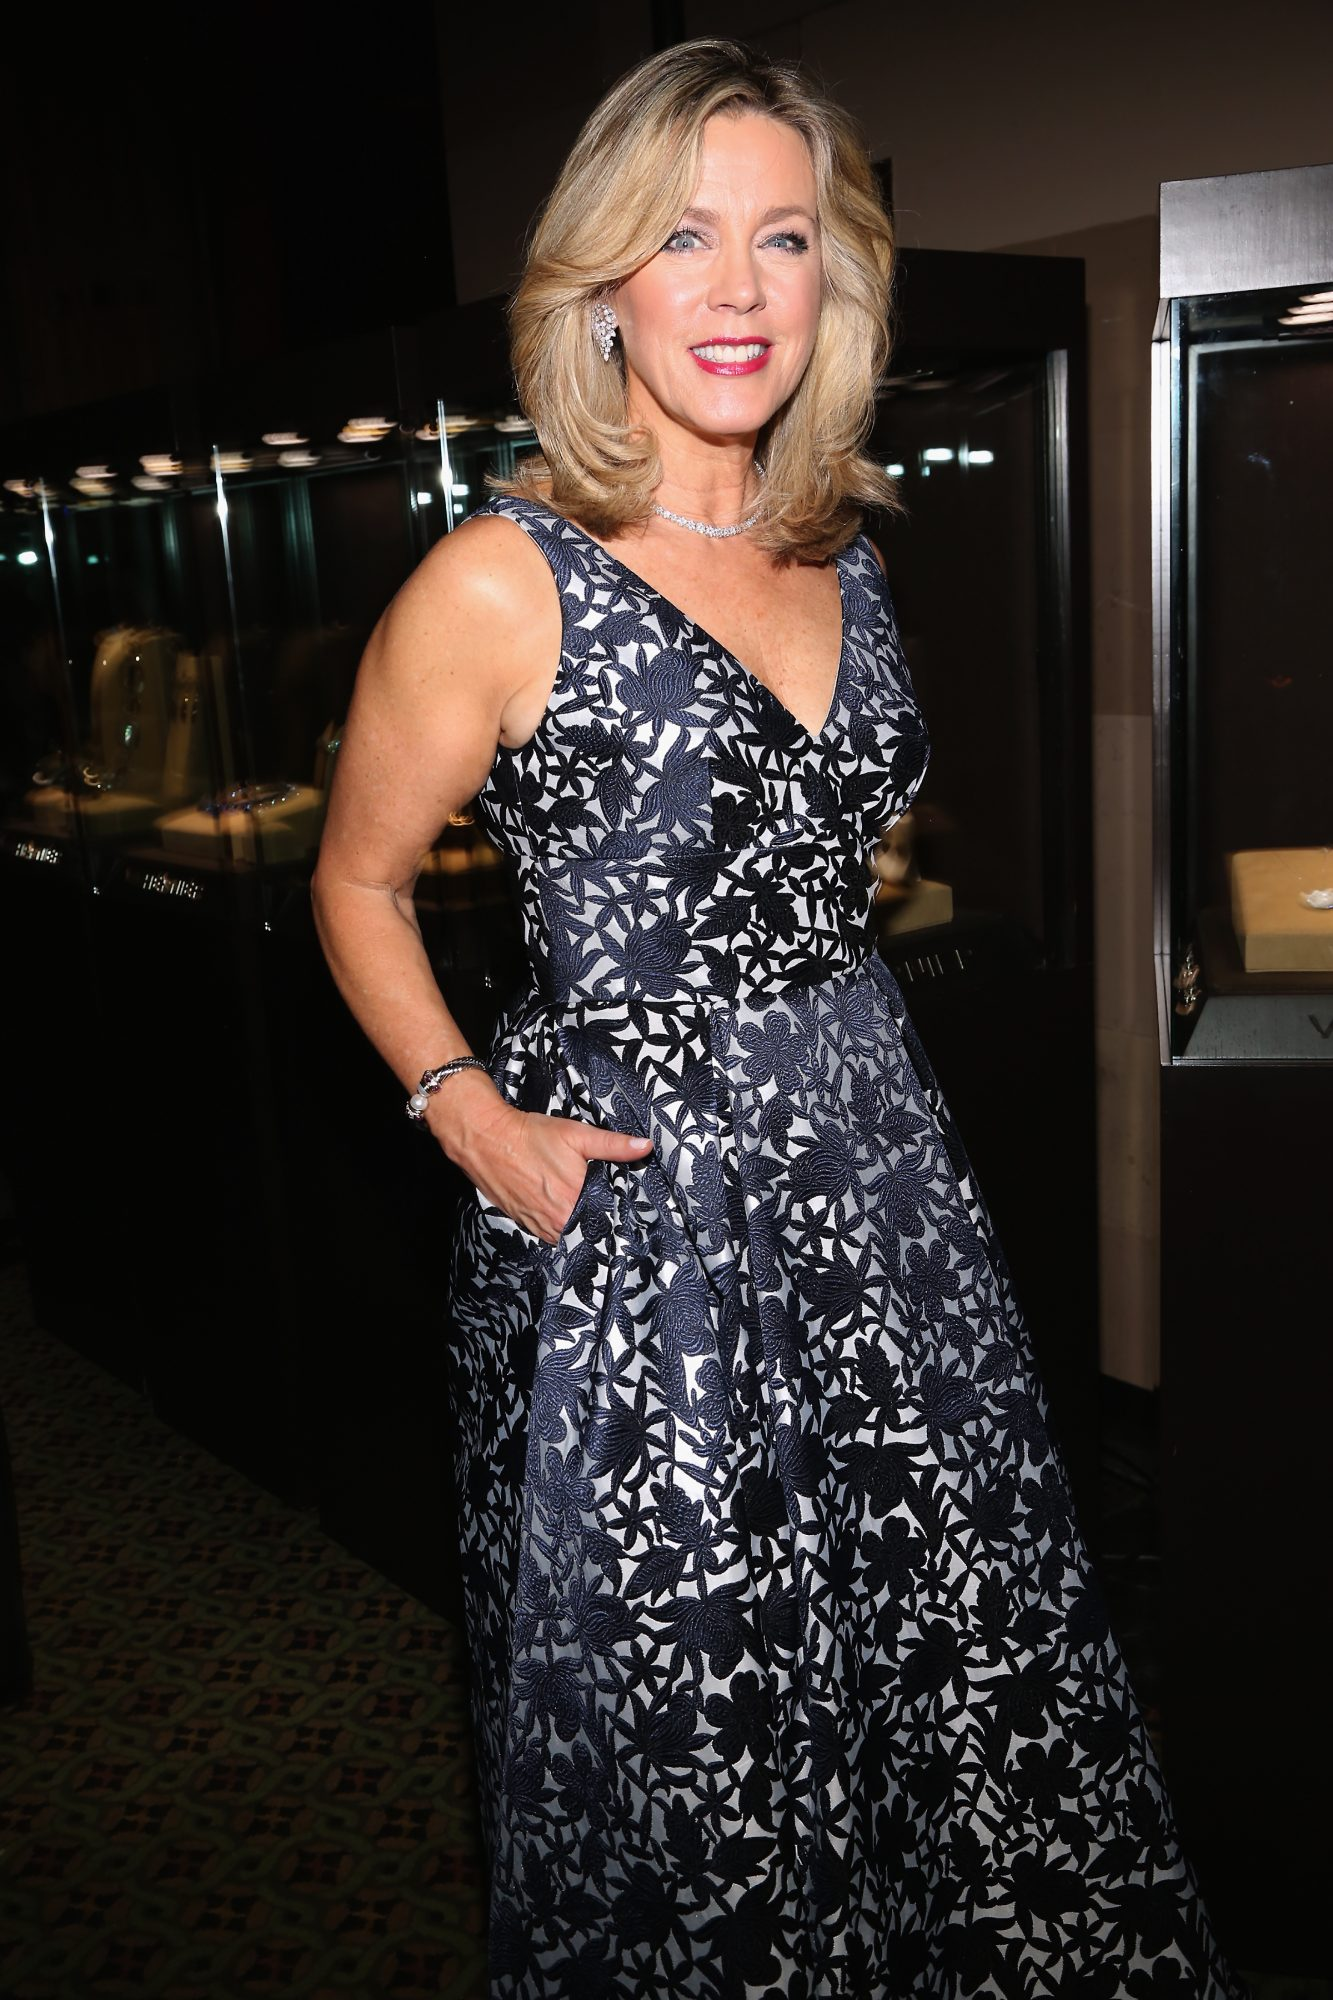 Inside Edition's Deborah Norville Dropped 30 Lbs. After a Decade of Feeling 'Terrible' About Her Body